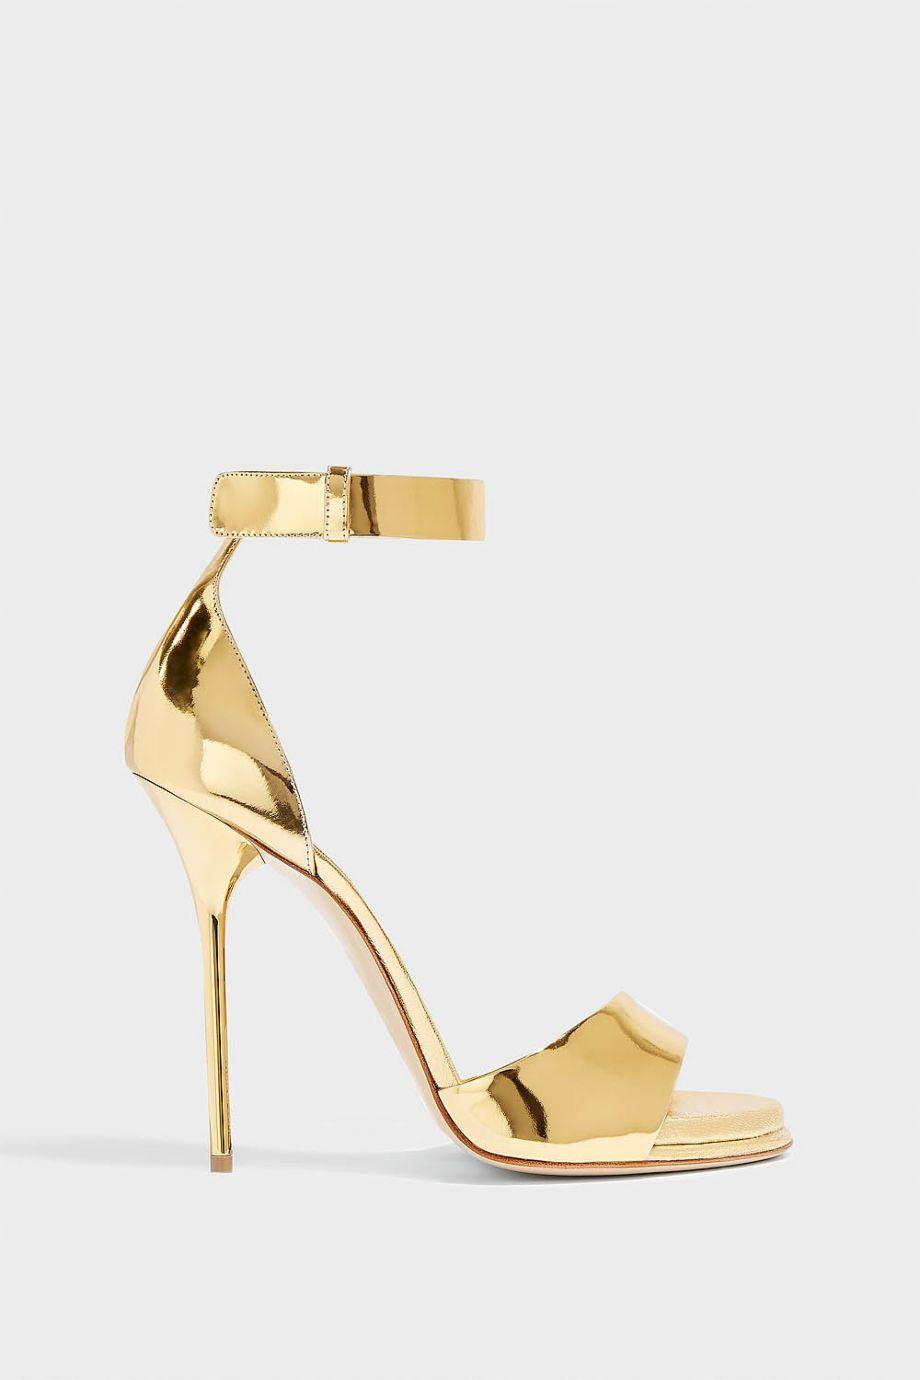 Paul Andrew Pogany Mirrored-Leather Sandals In Gold